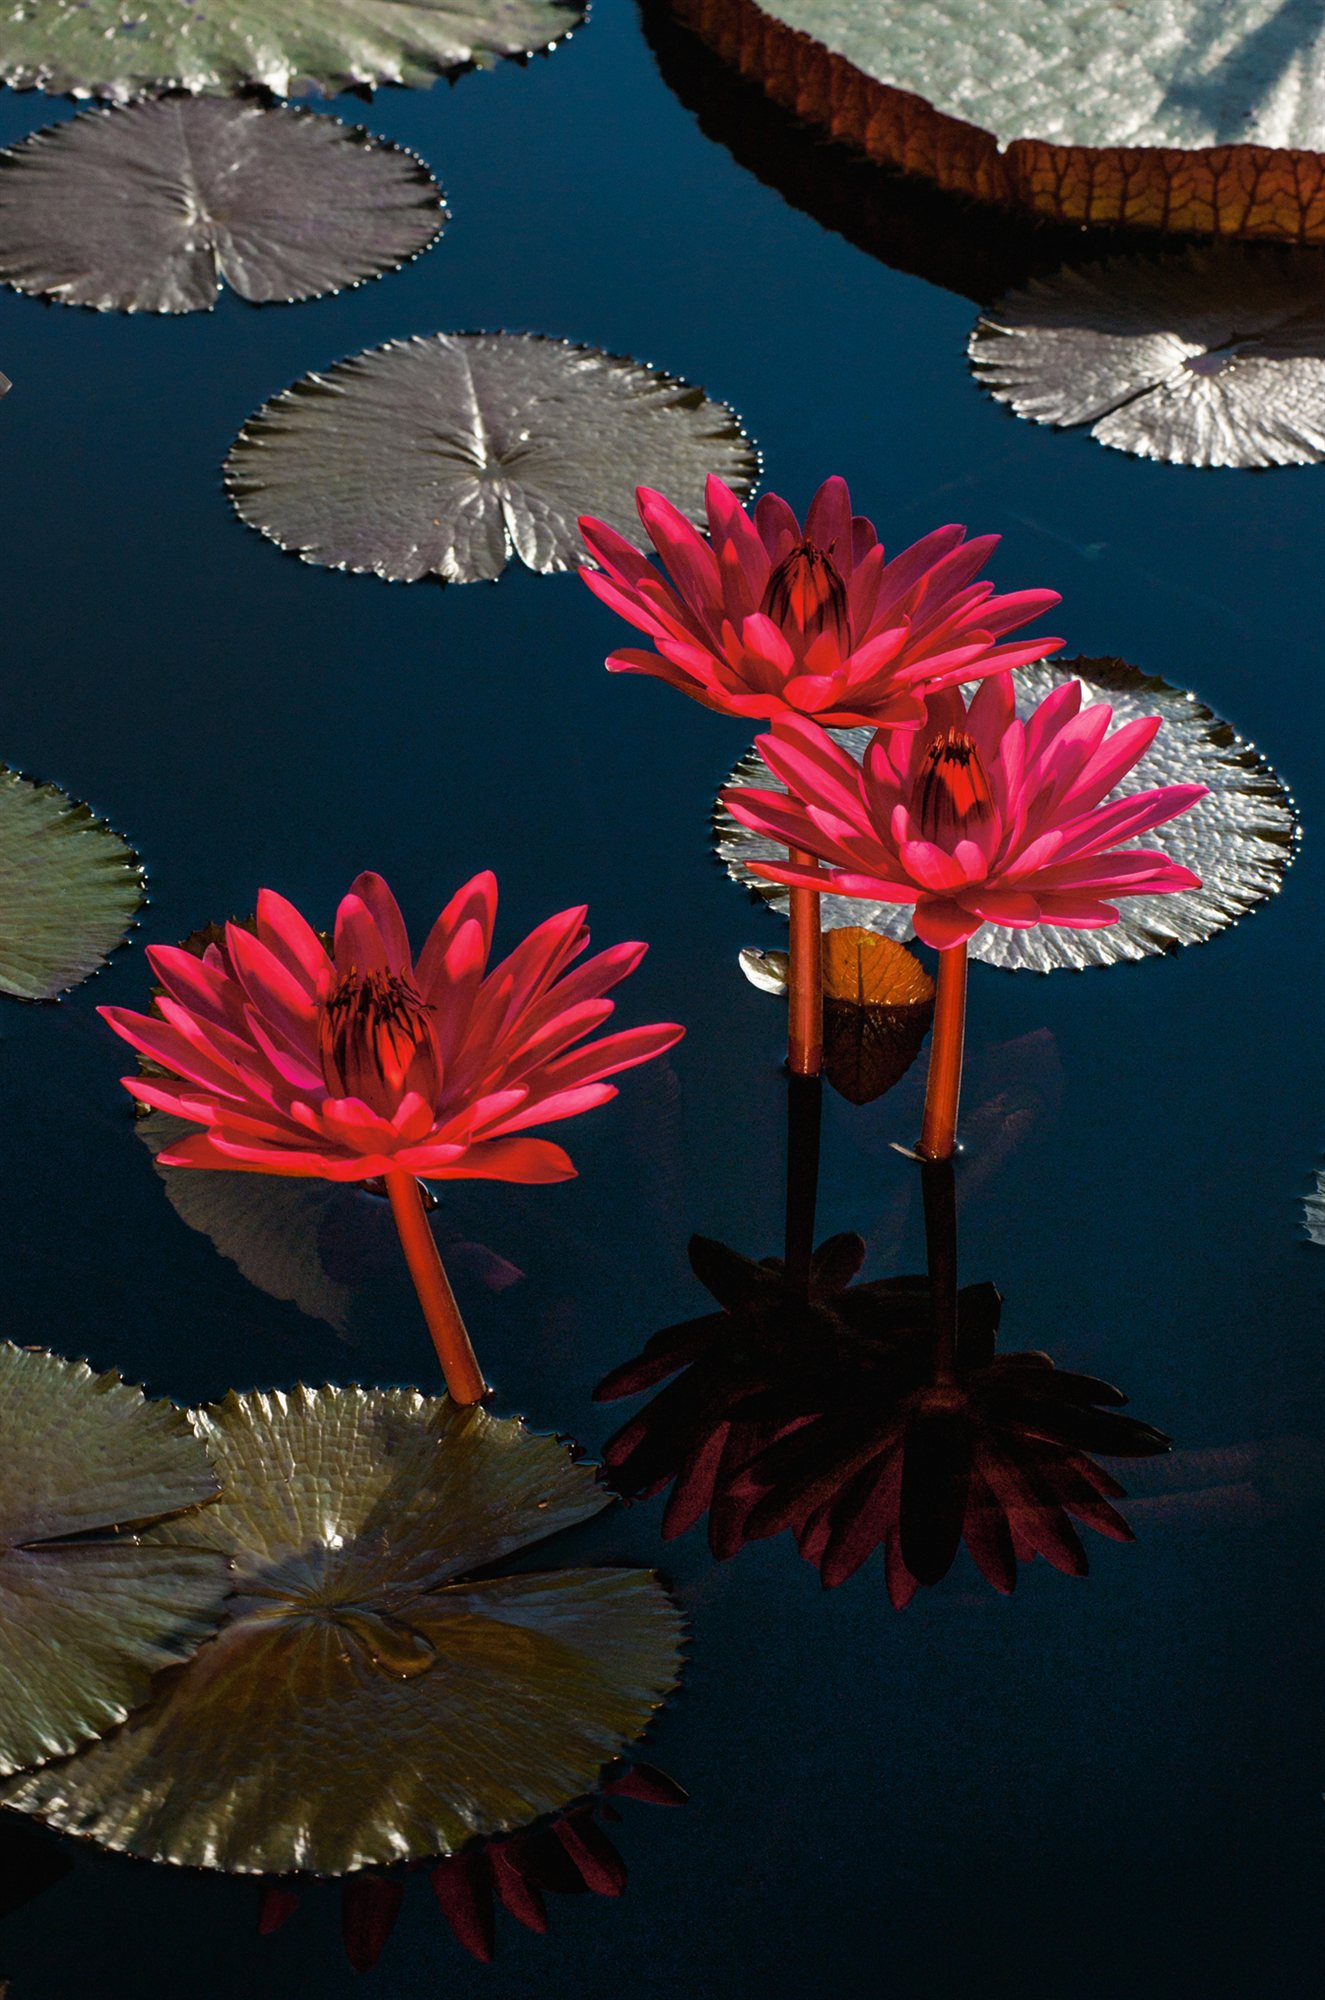 04-tropical-water-lillies-longwood-gardens-pennsylvania. Jardines nocturnos